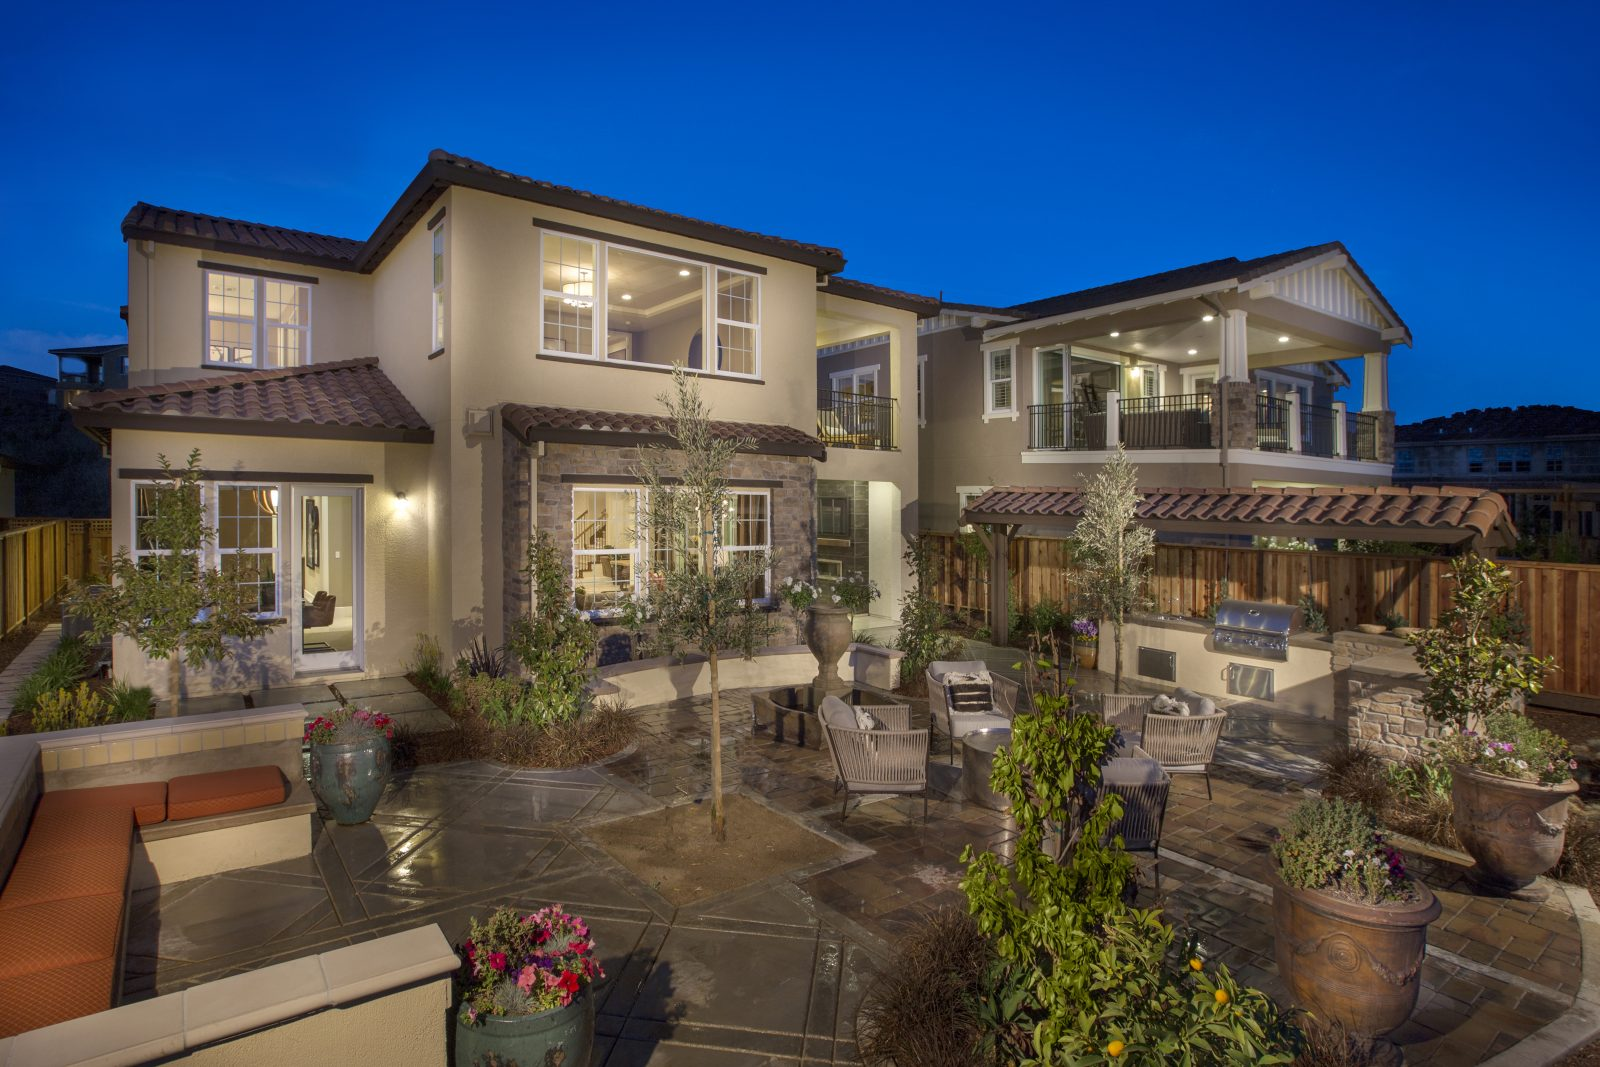 Rear exterior view of new luxury home | Crown Point at Stonebrae in Hayward, CA | Brookfield Residential